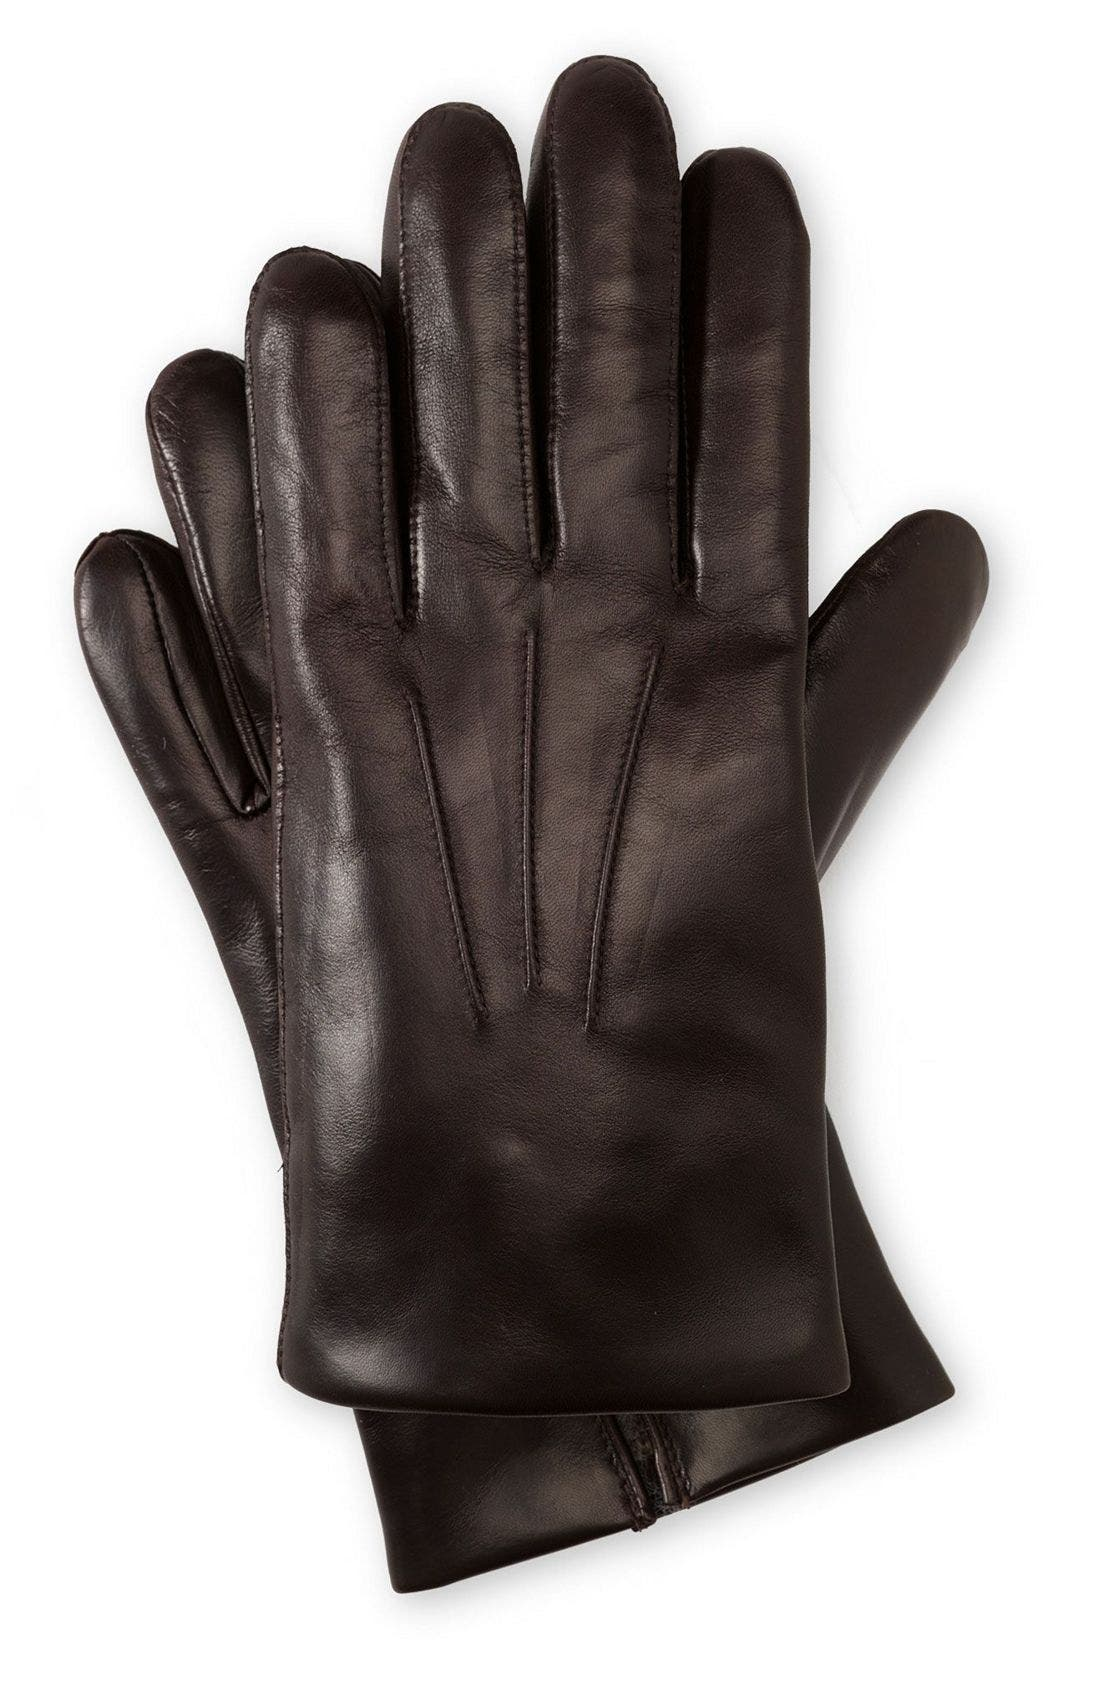 Alternate Image 1 Selected - John W. Nordstrom® Cashmere Lined Leather Gloves